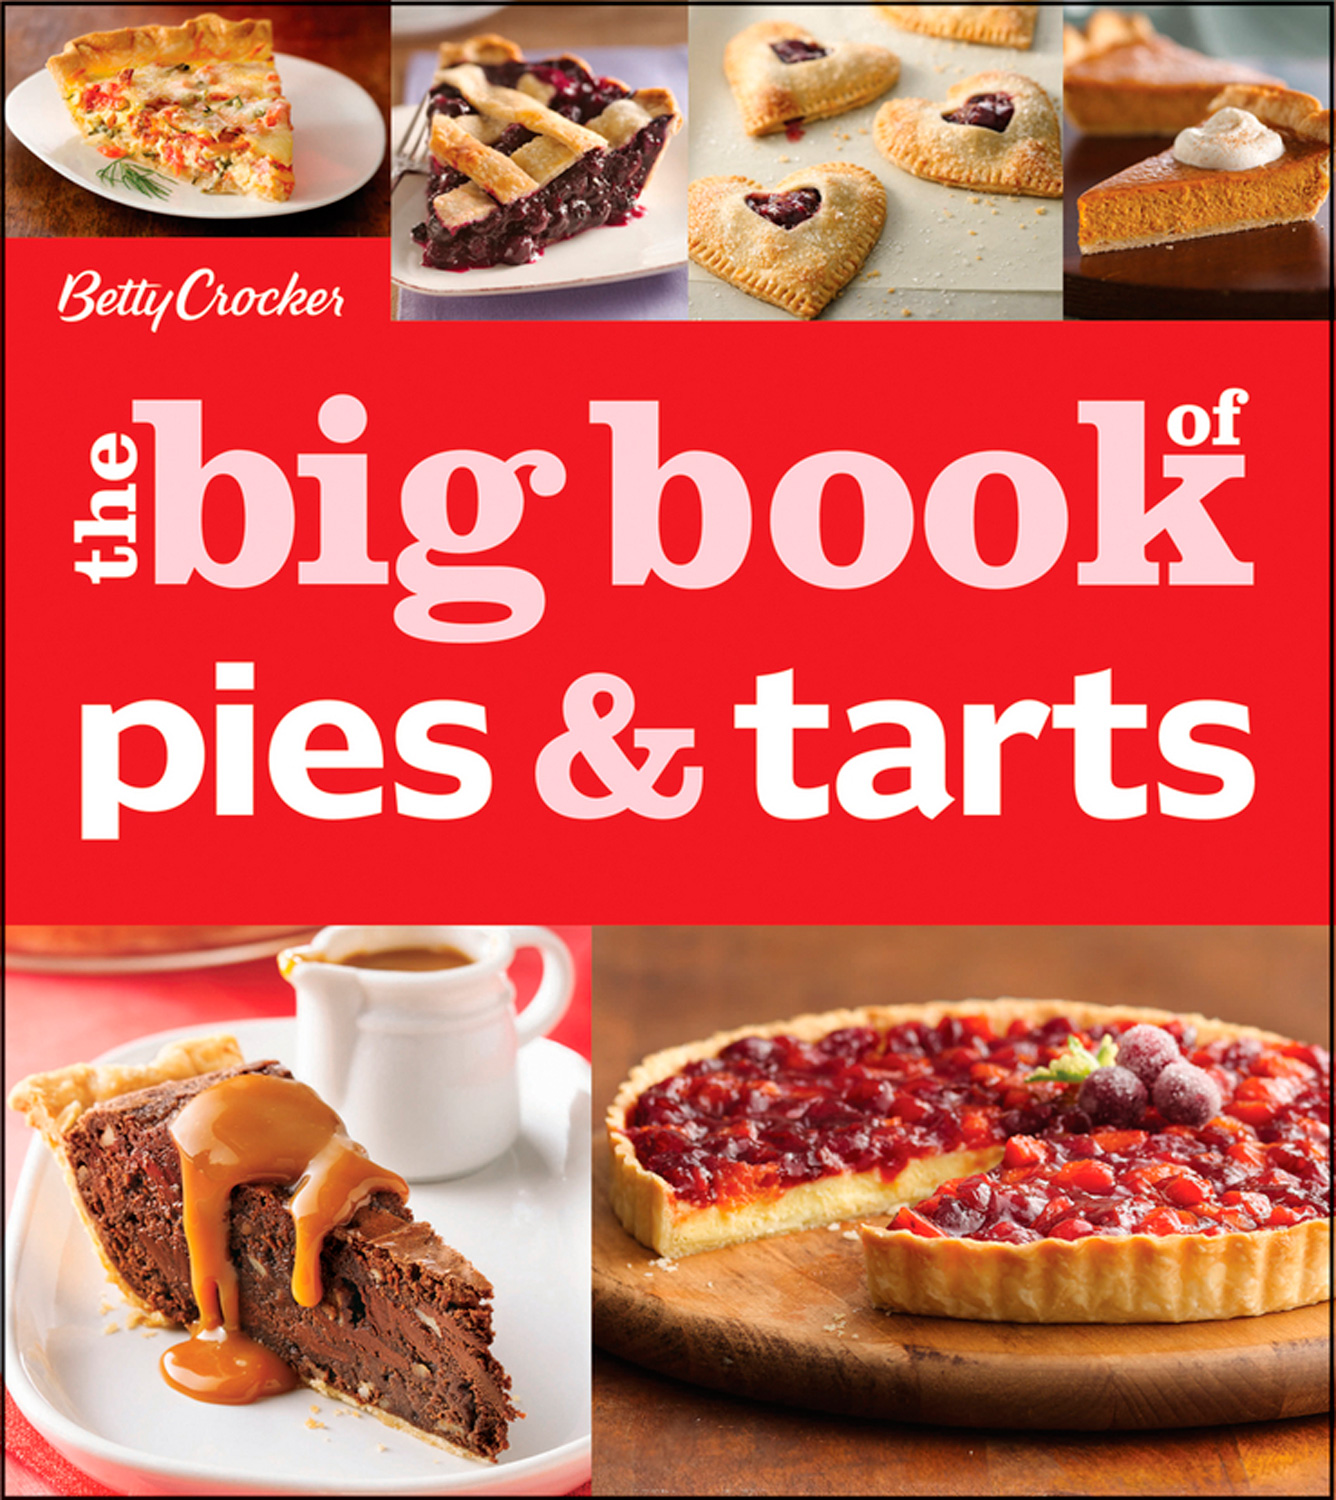 Betty Crocker The Big Book of Pies and Tarts-9781118432167